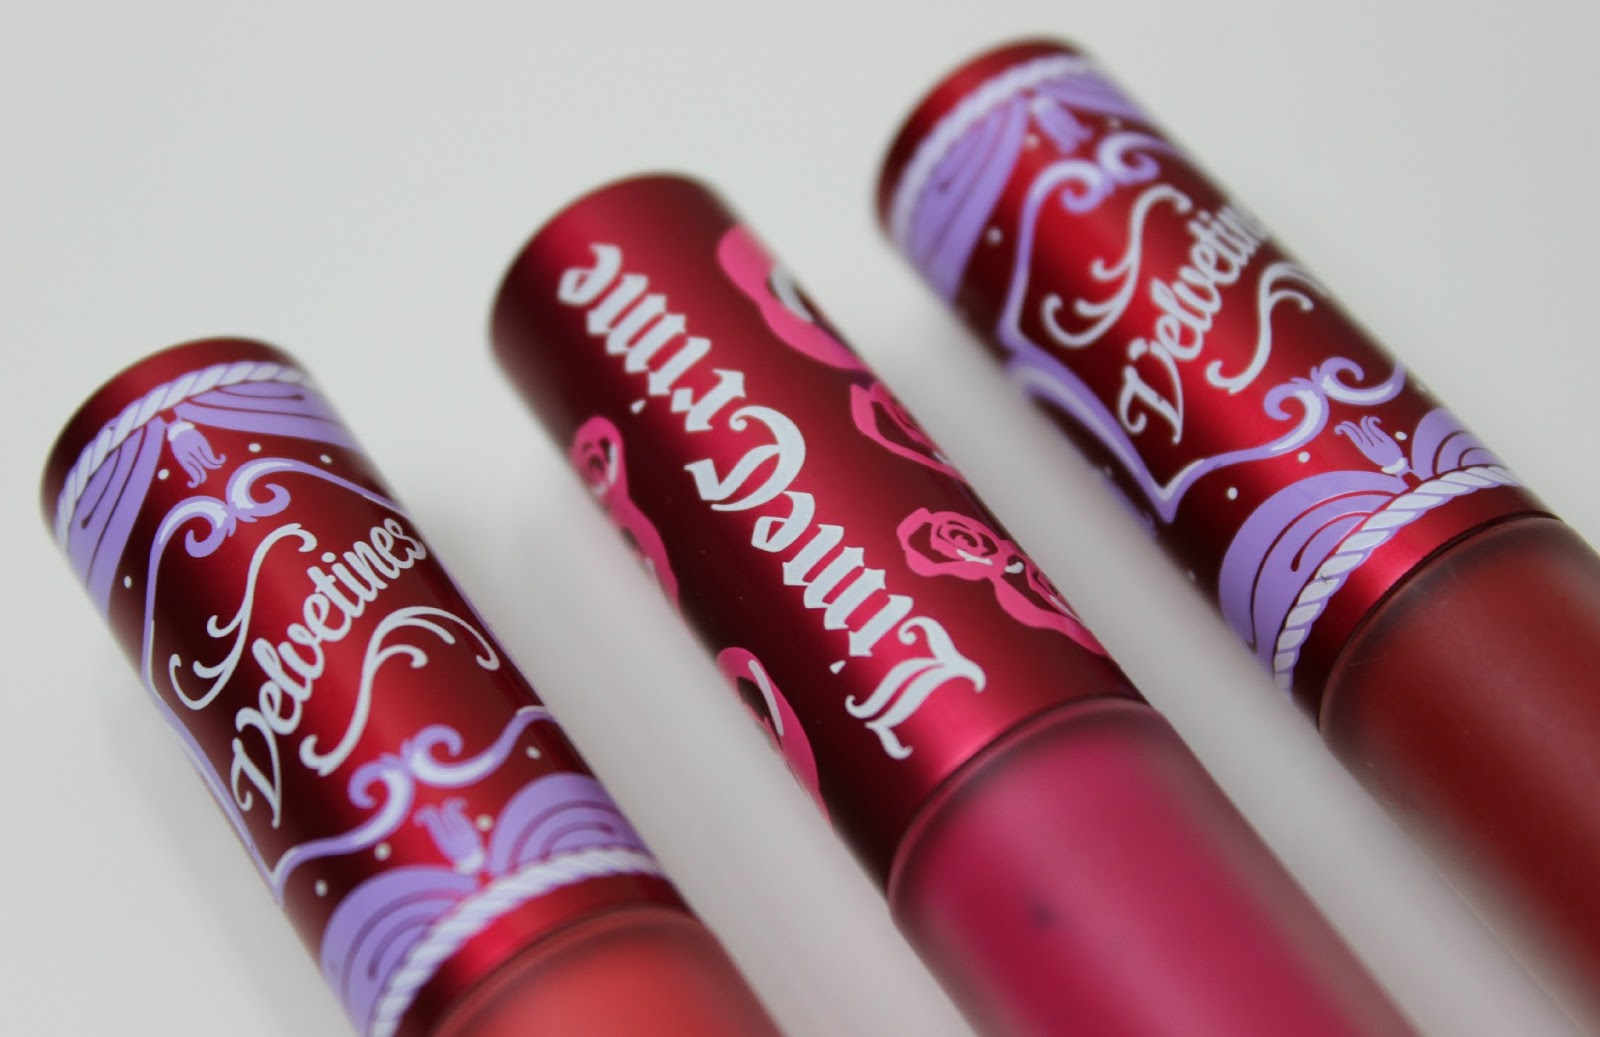 A picture of Lime Crime Velvetines